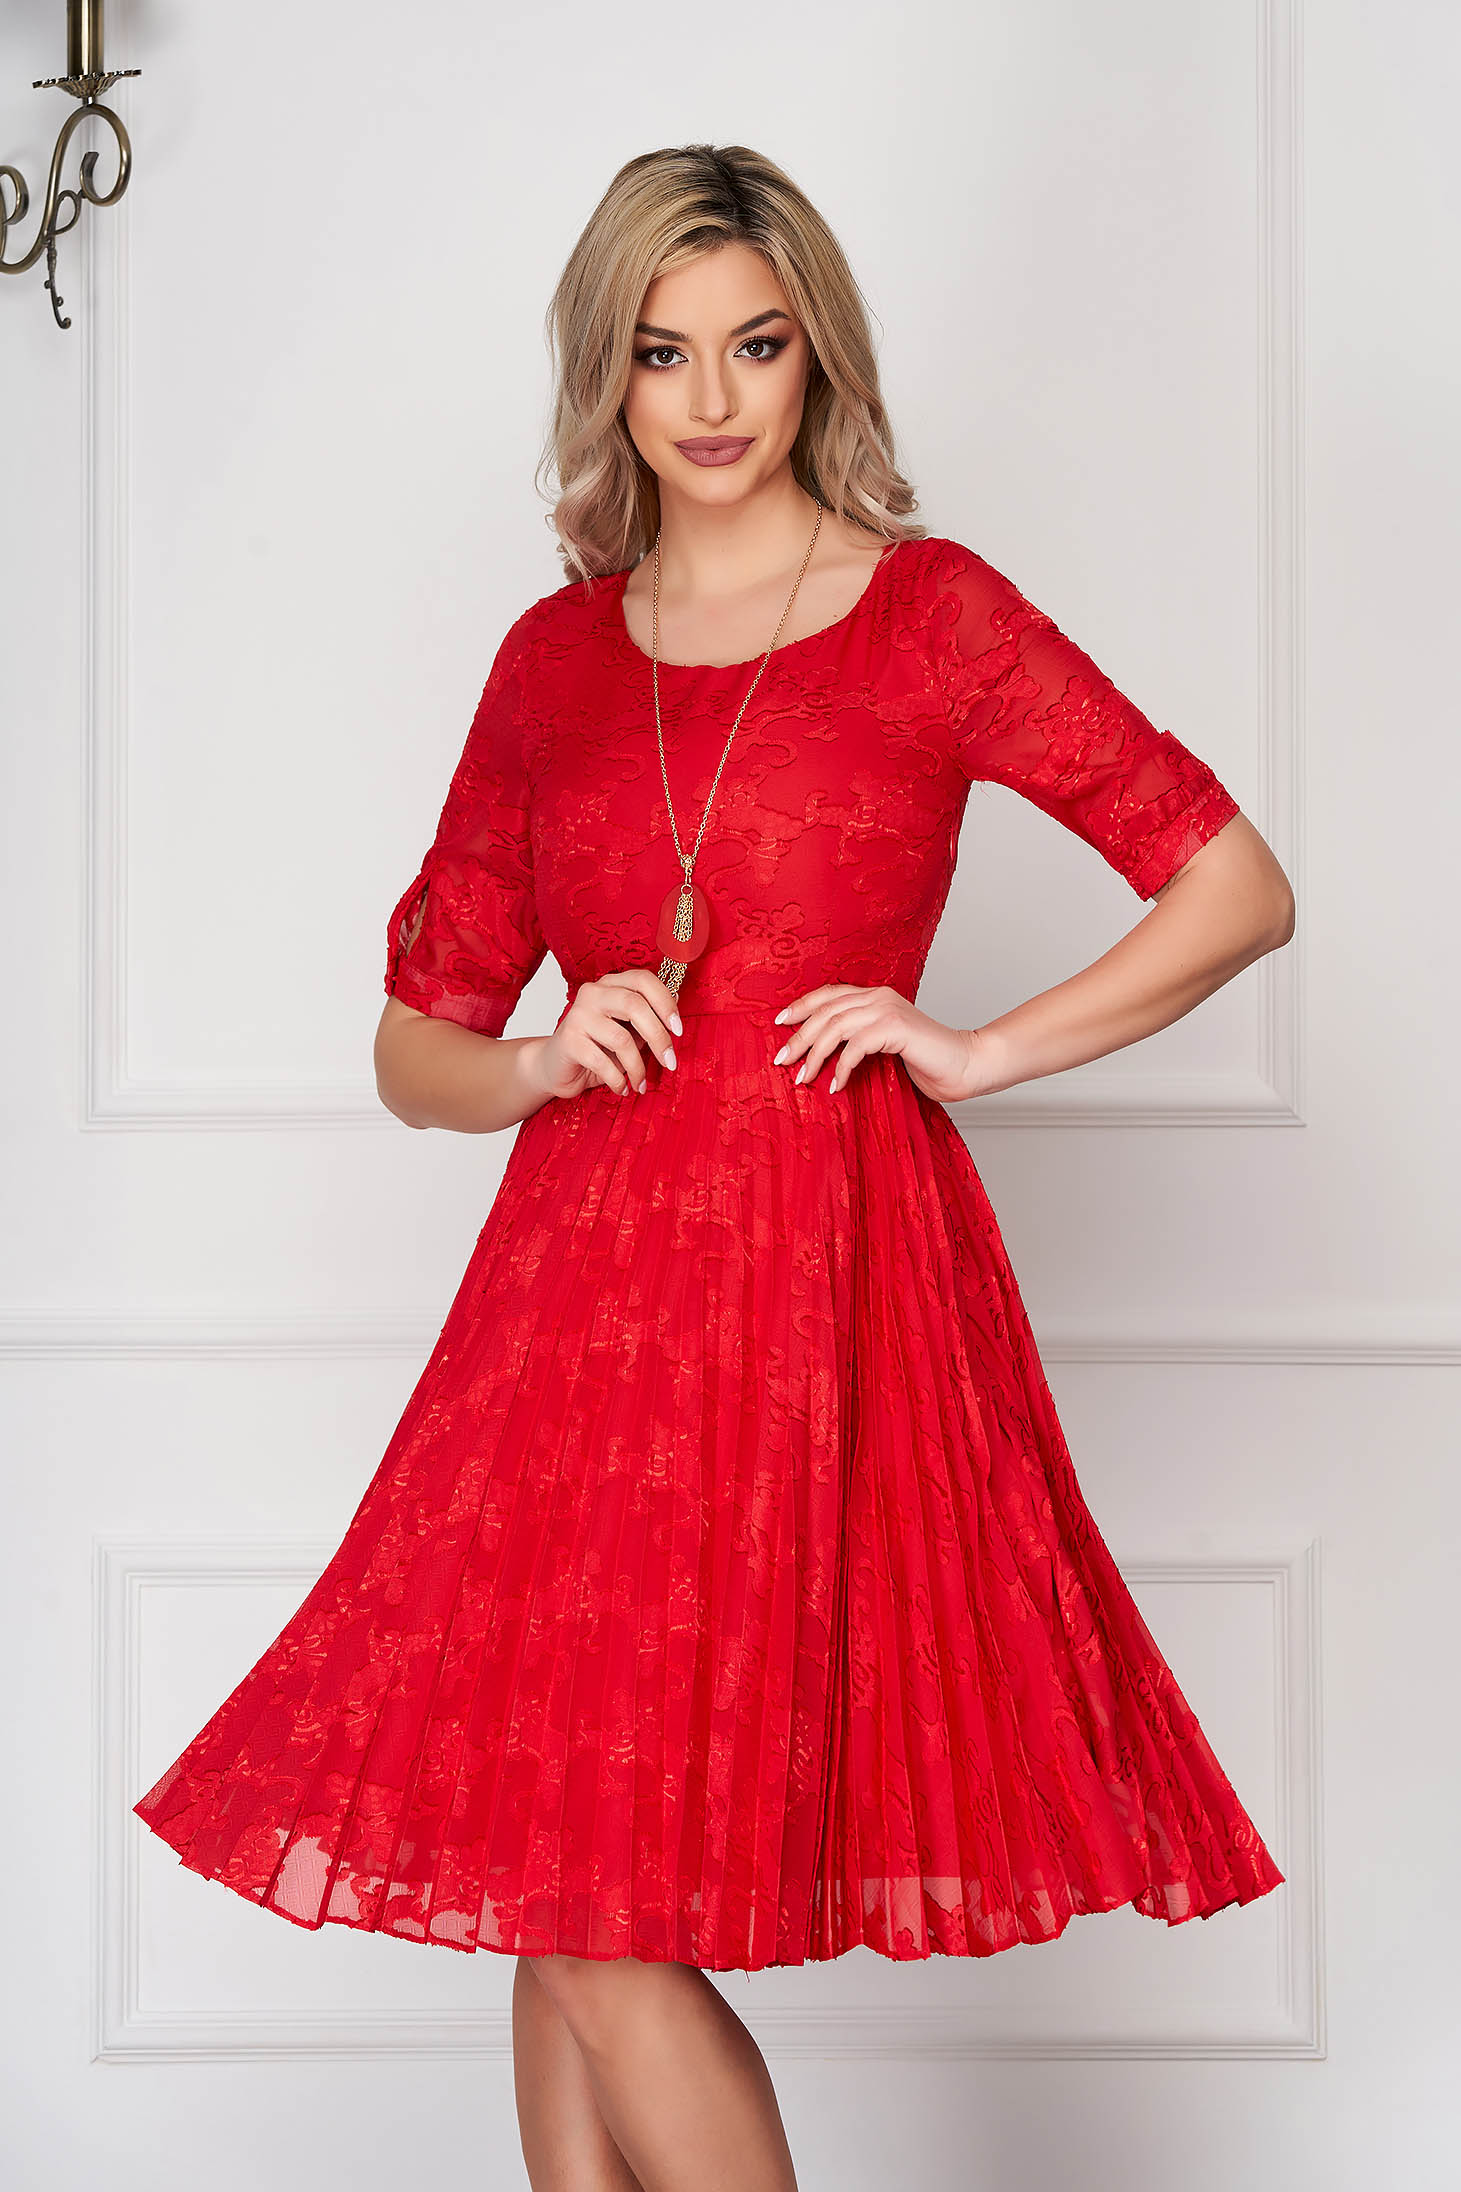 Red dress elegant midi cloche laced folded up accesorised with necklace